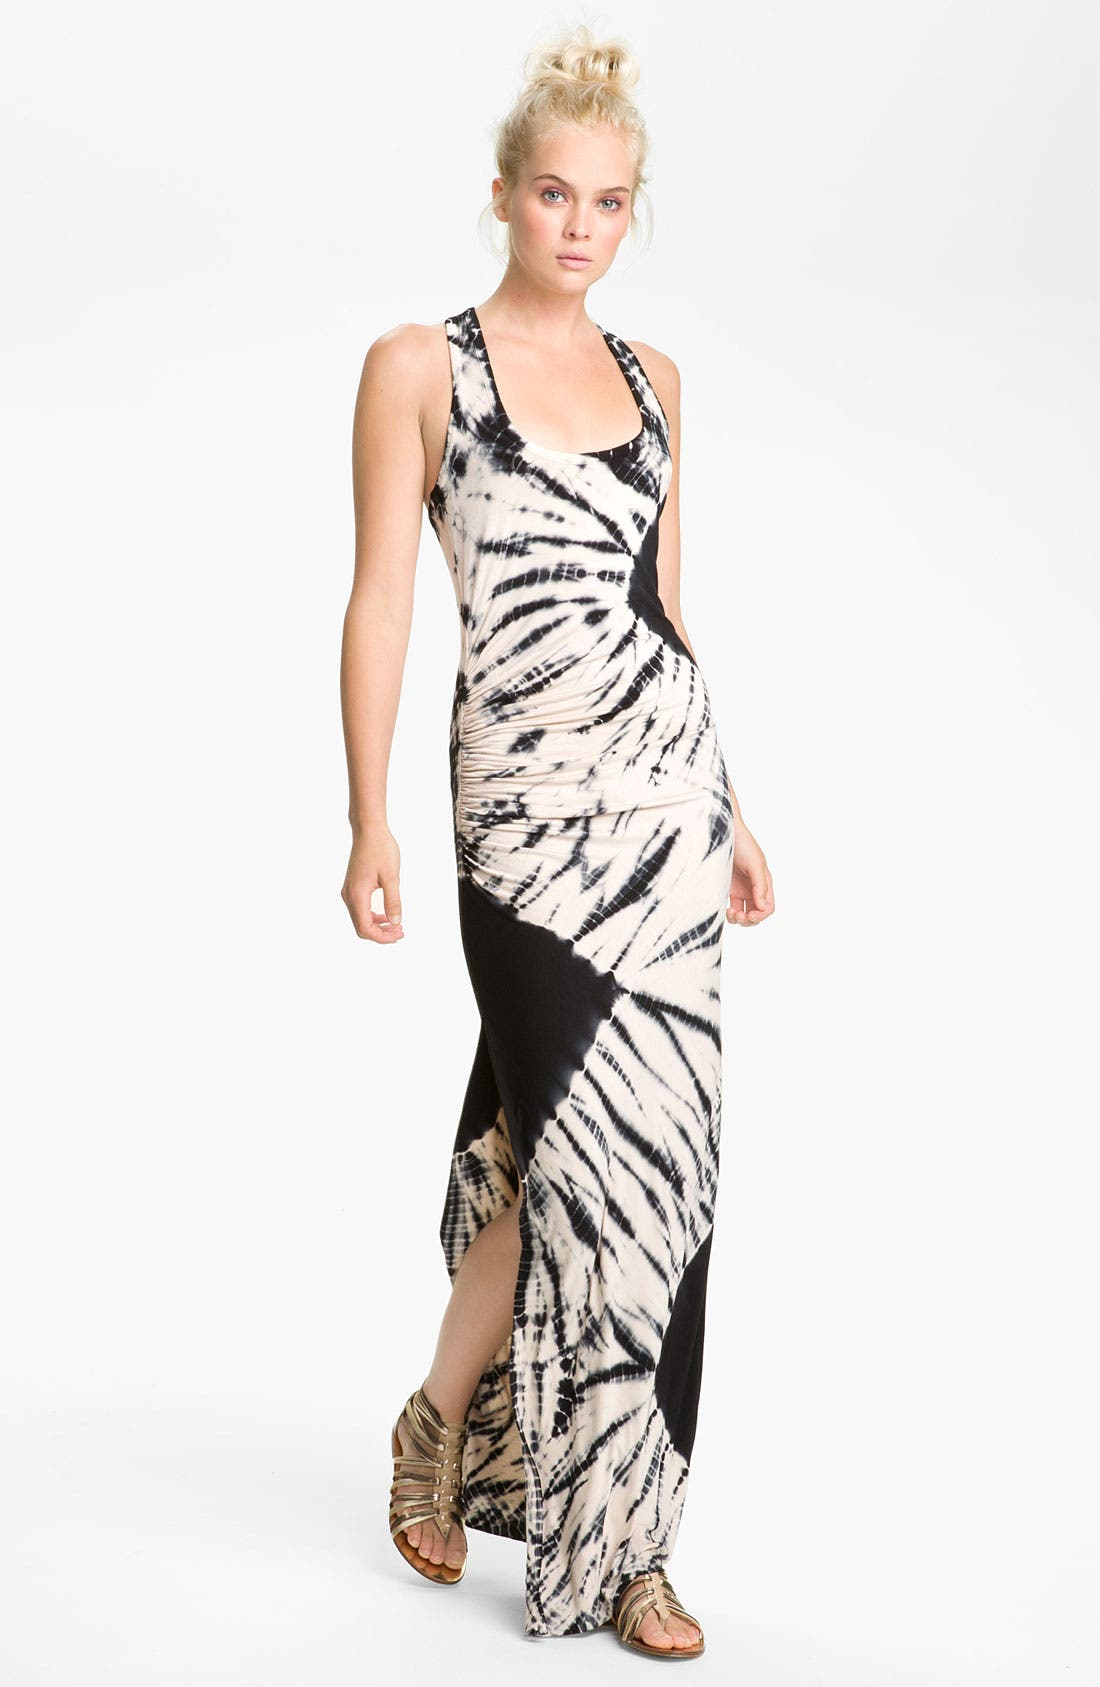 Main Image - Young, Fabulous & Broke 'Maelle' Tie Dye Maxi Dress